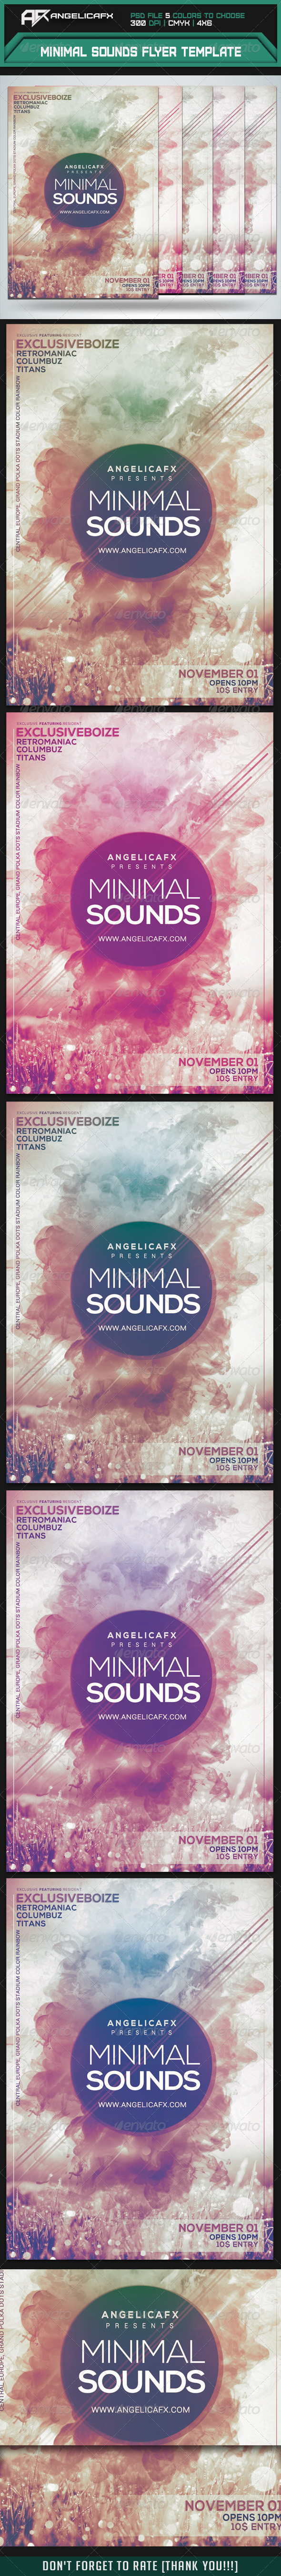 GraphicRiver Minimal Sounds Flyer Template 8641969